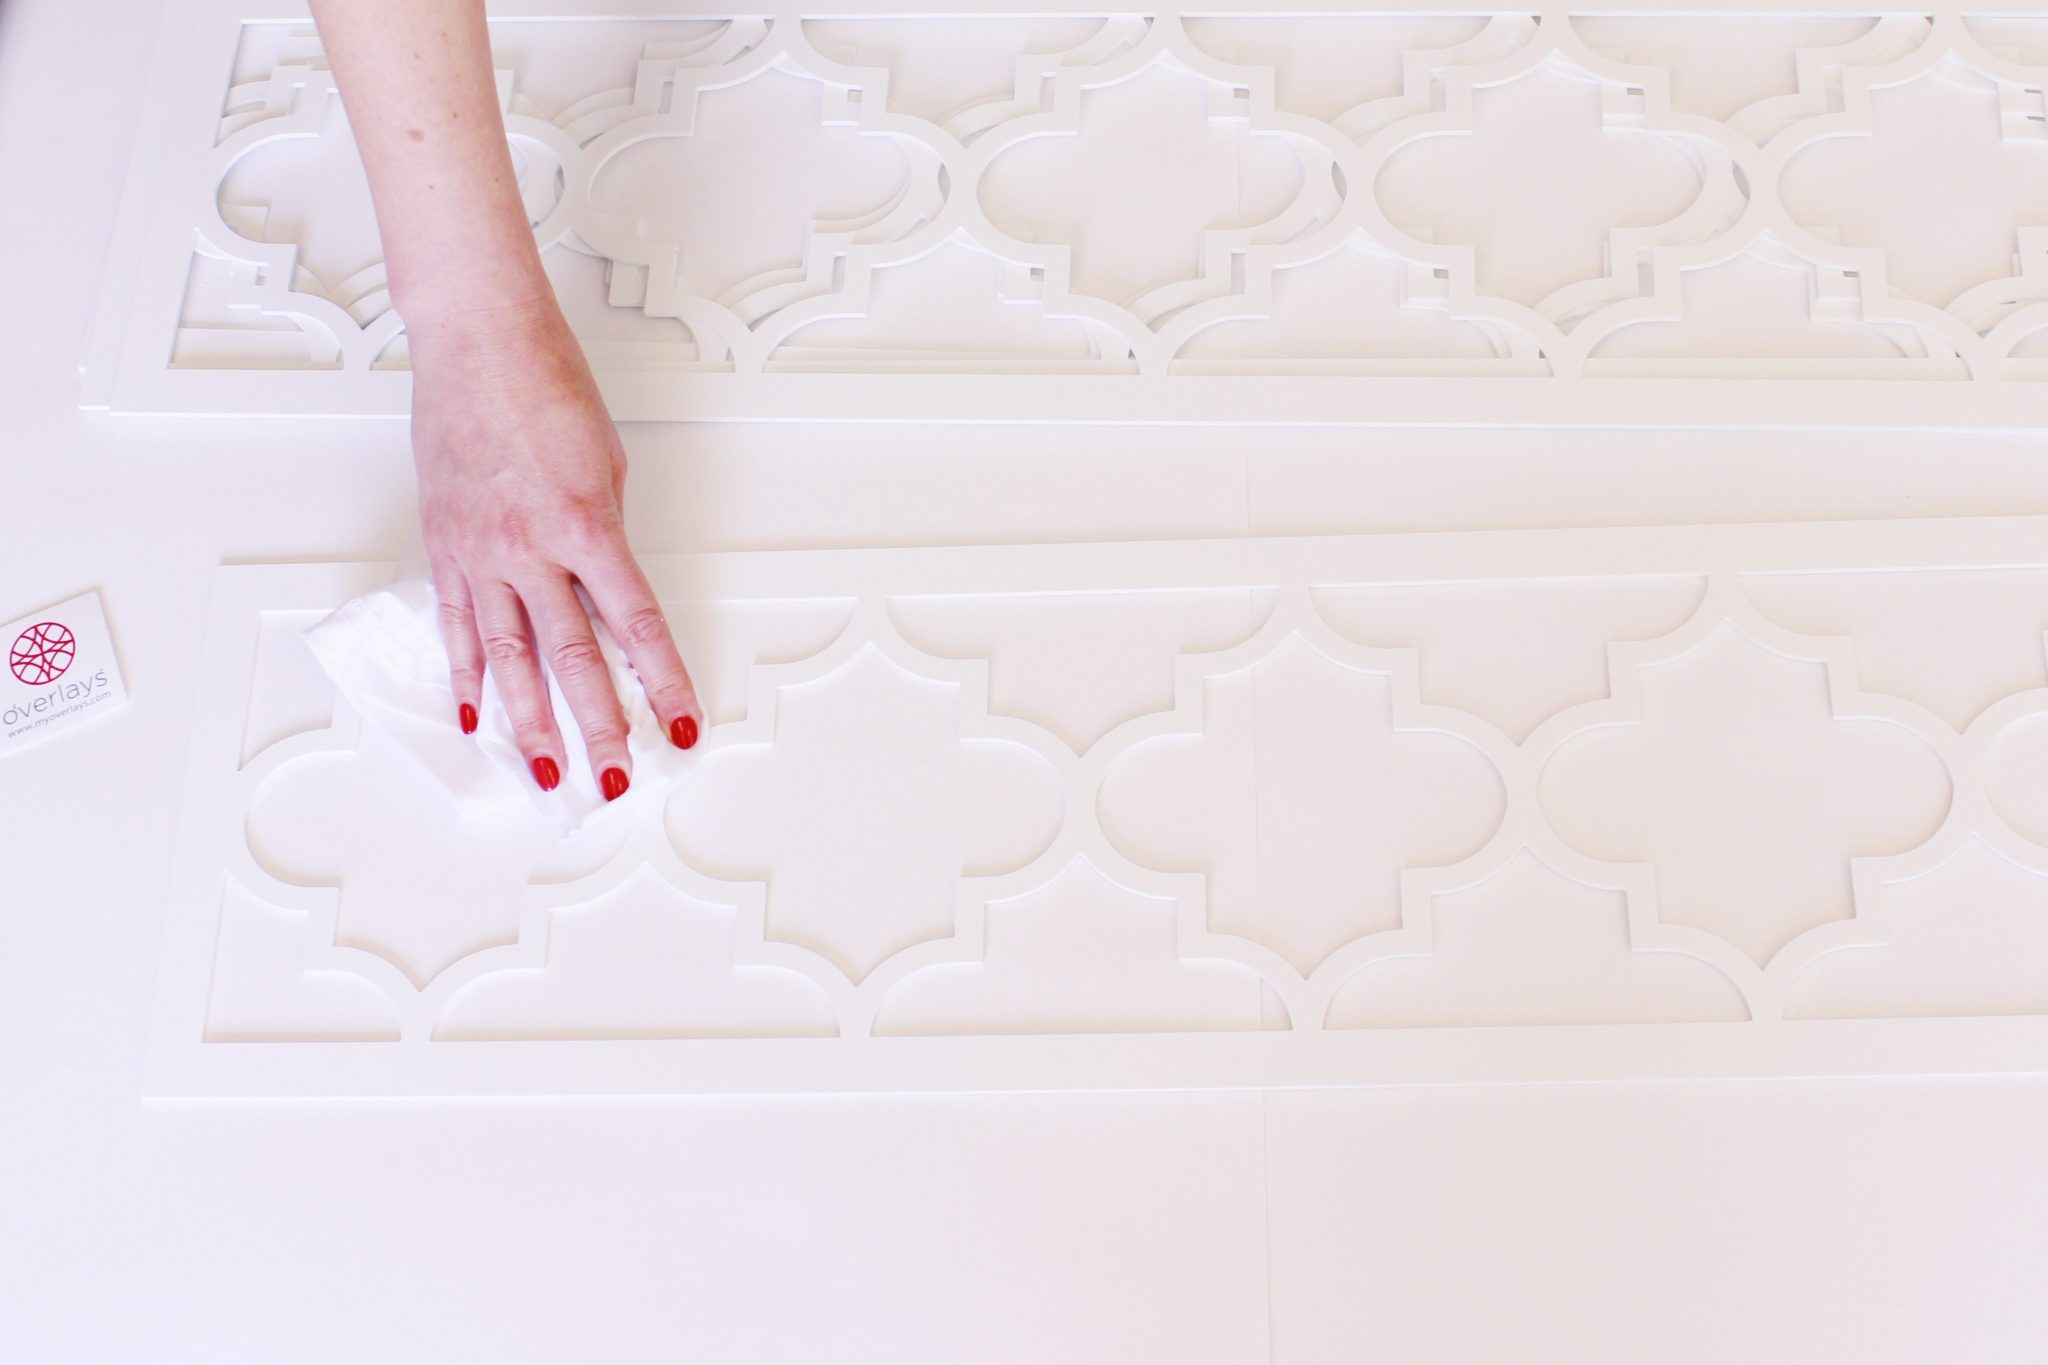 DIY Ikea Dresser Hack | Wipe Down O'verlays With Rubbing Alcohol